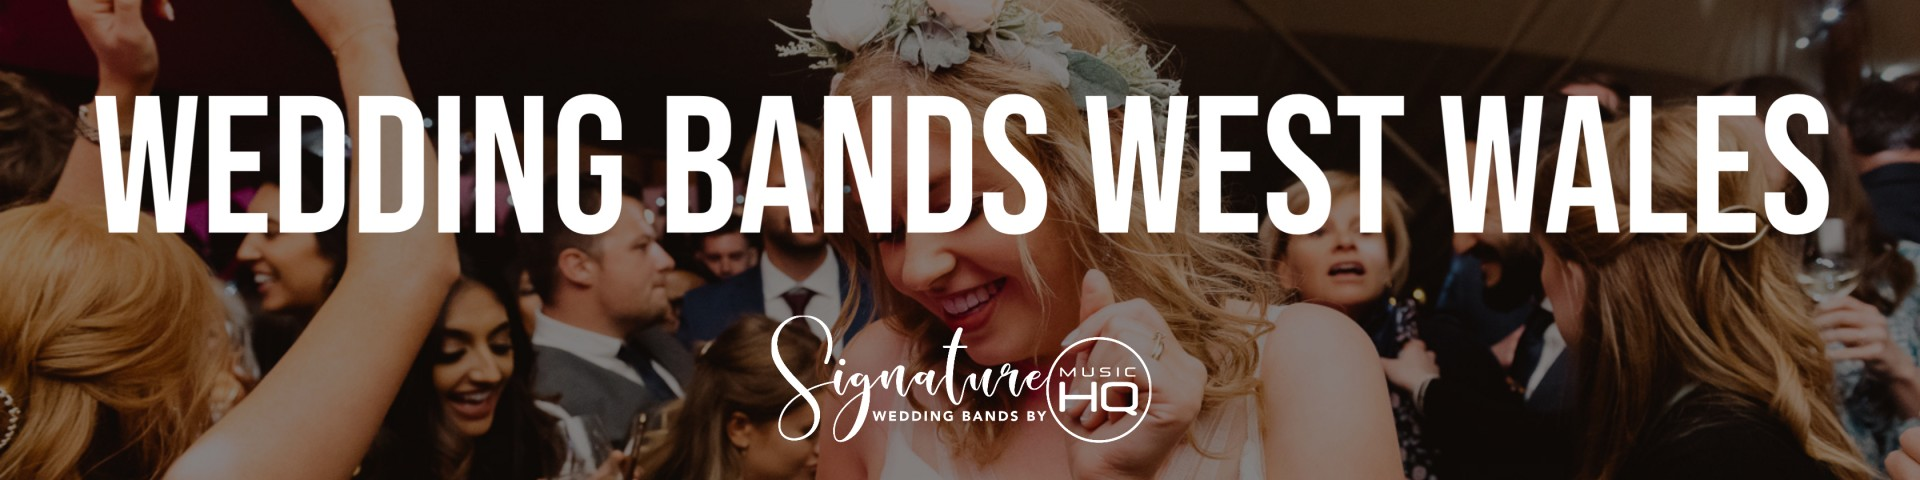 West Wales Wedding Bands for Hire